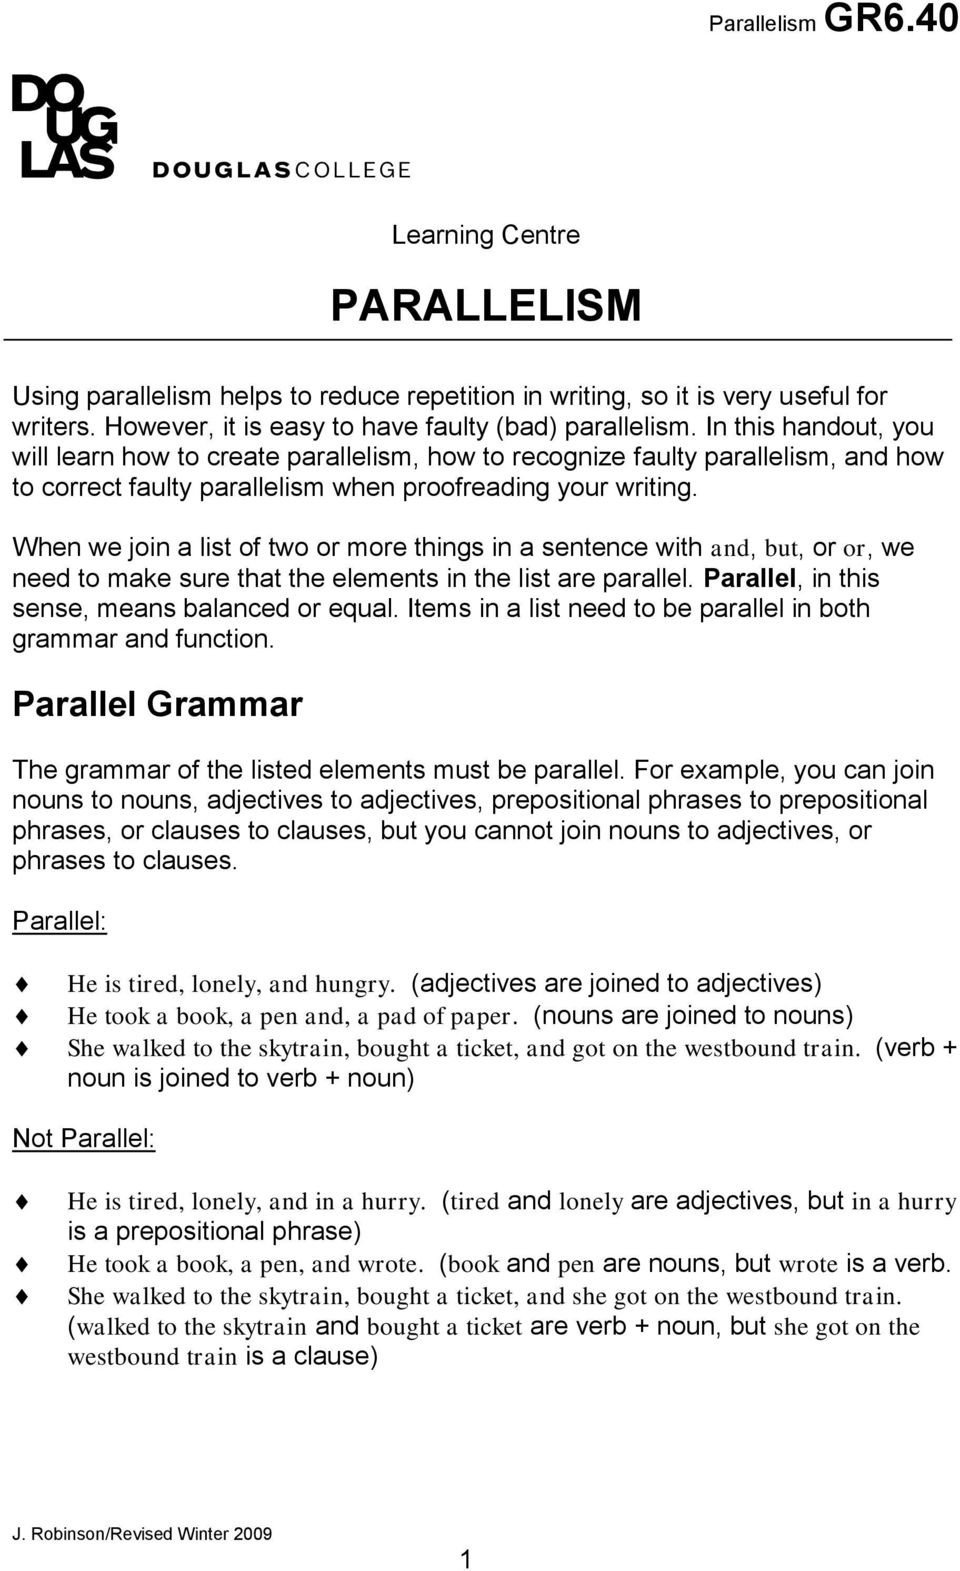 Grammar Worksheets Parallelism Answers Learning Centre Parallelism Pdf Free Download